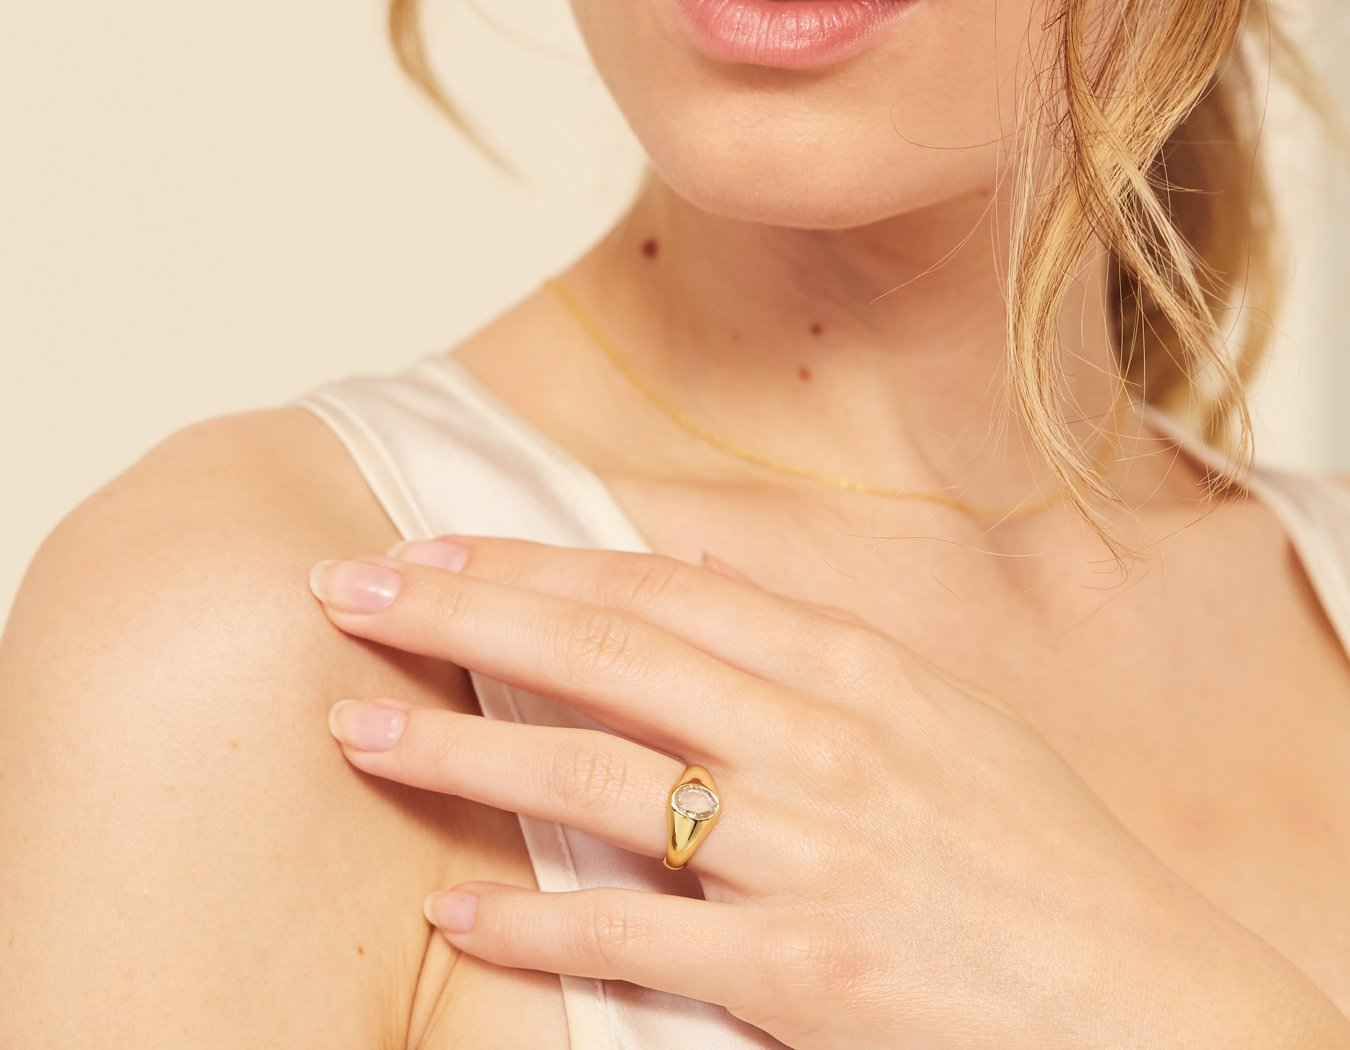 Vrai and Oro model wearing Oval Rose Signet diamond ring in 18K solid yellow gold simple classic